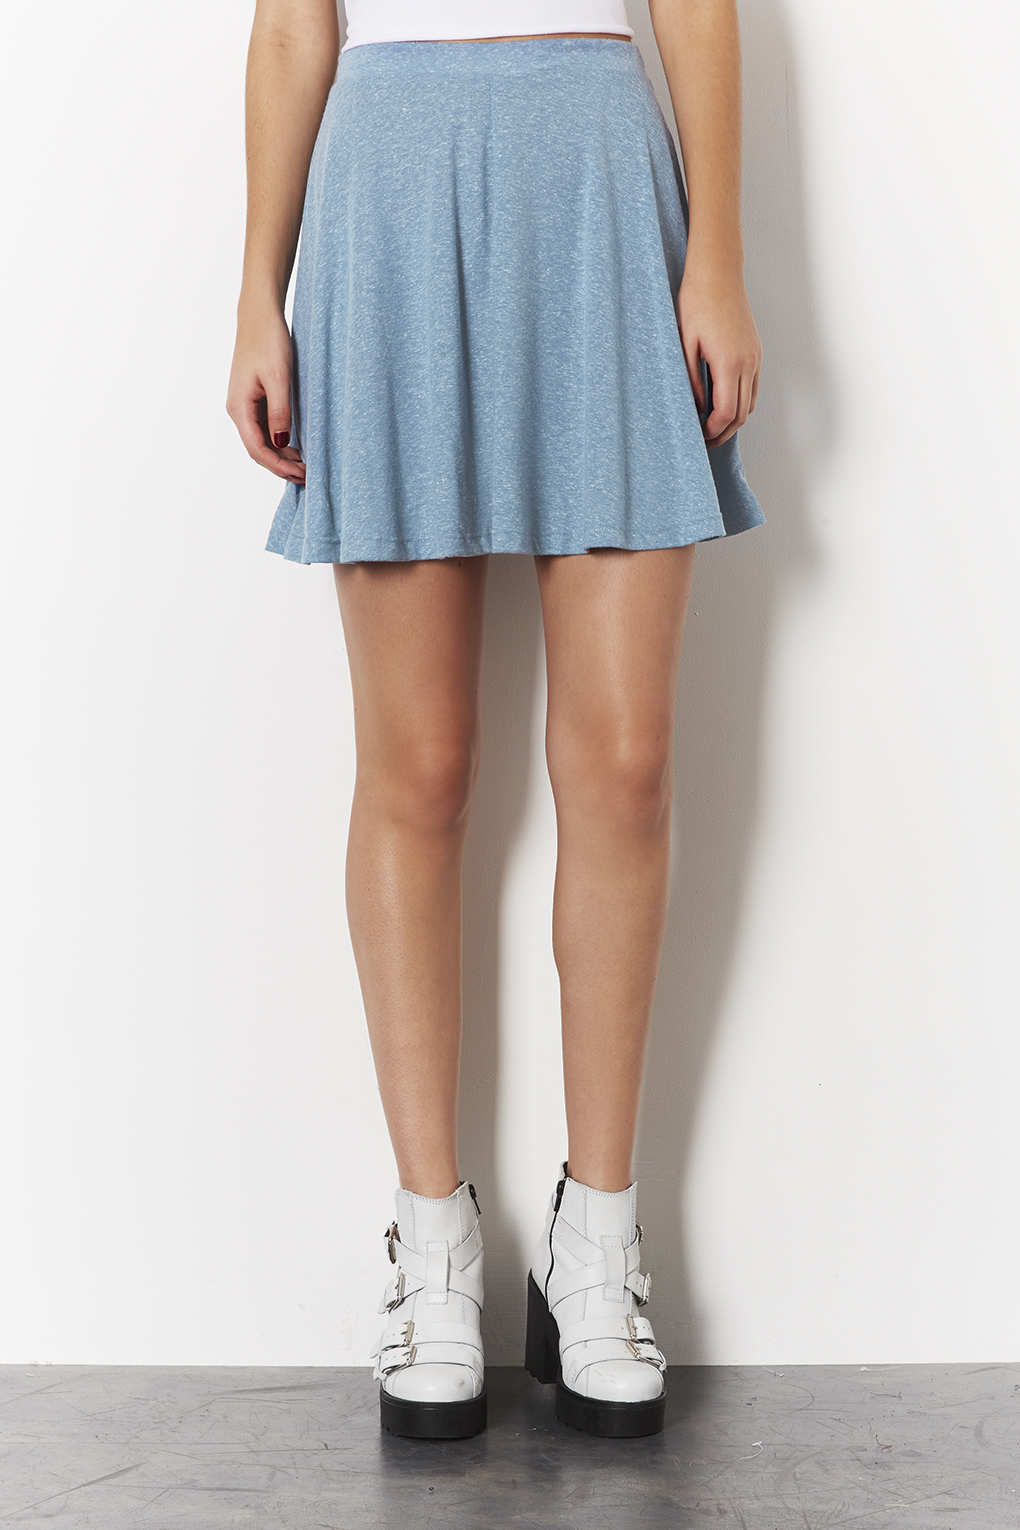 fdb958954b TOPSHOP Blue Speckle Skater Skirt in Blue - Lyst